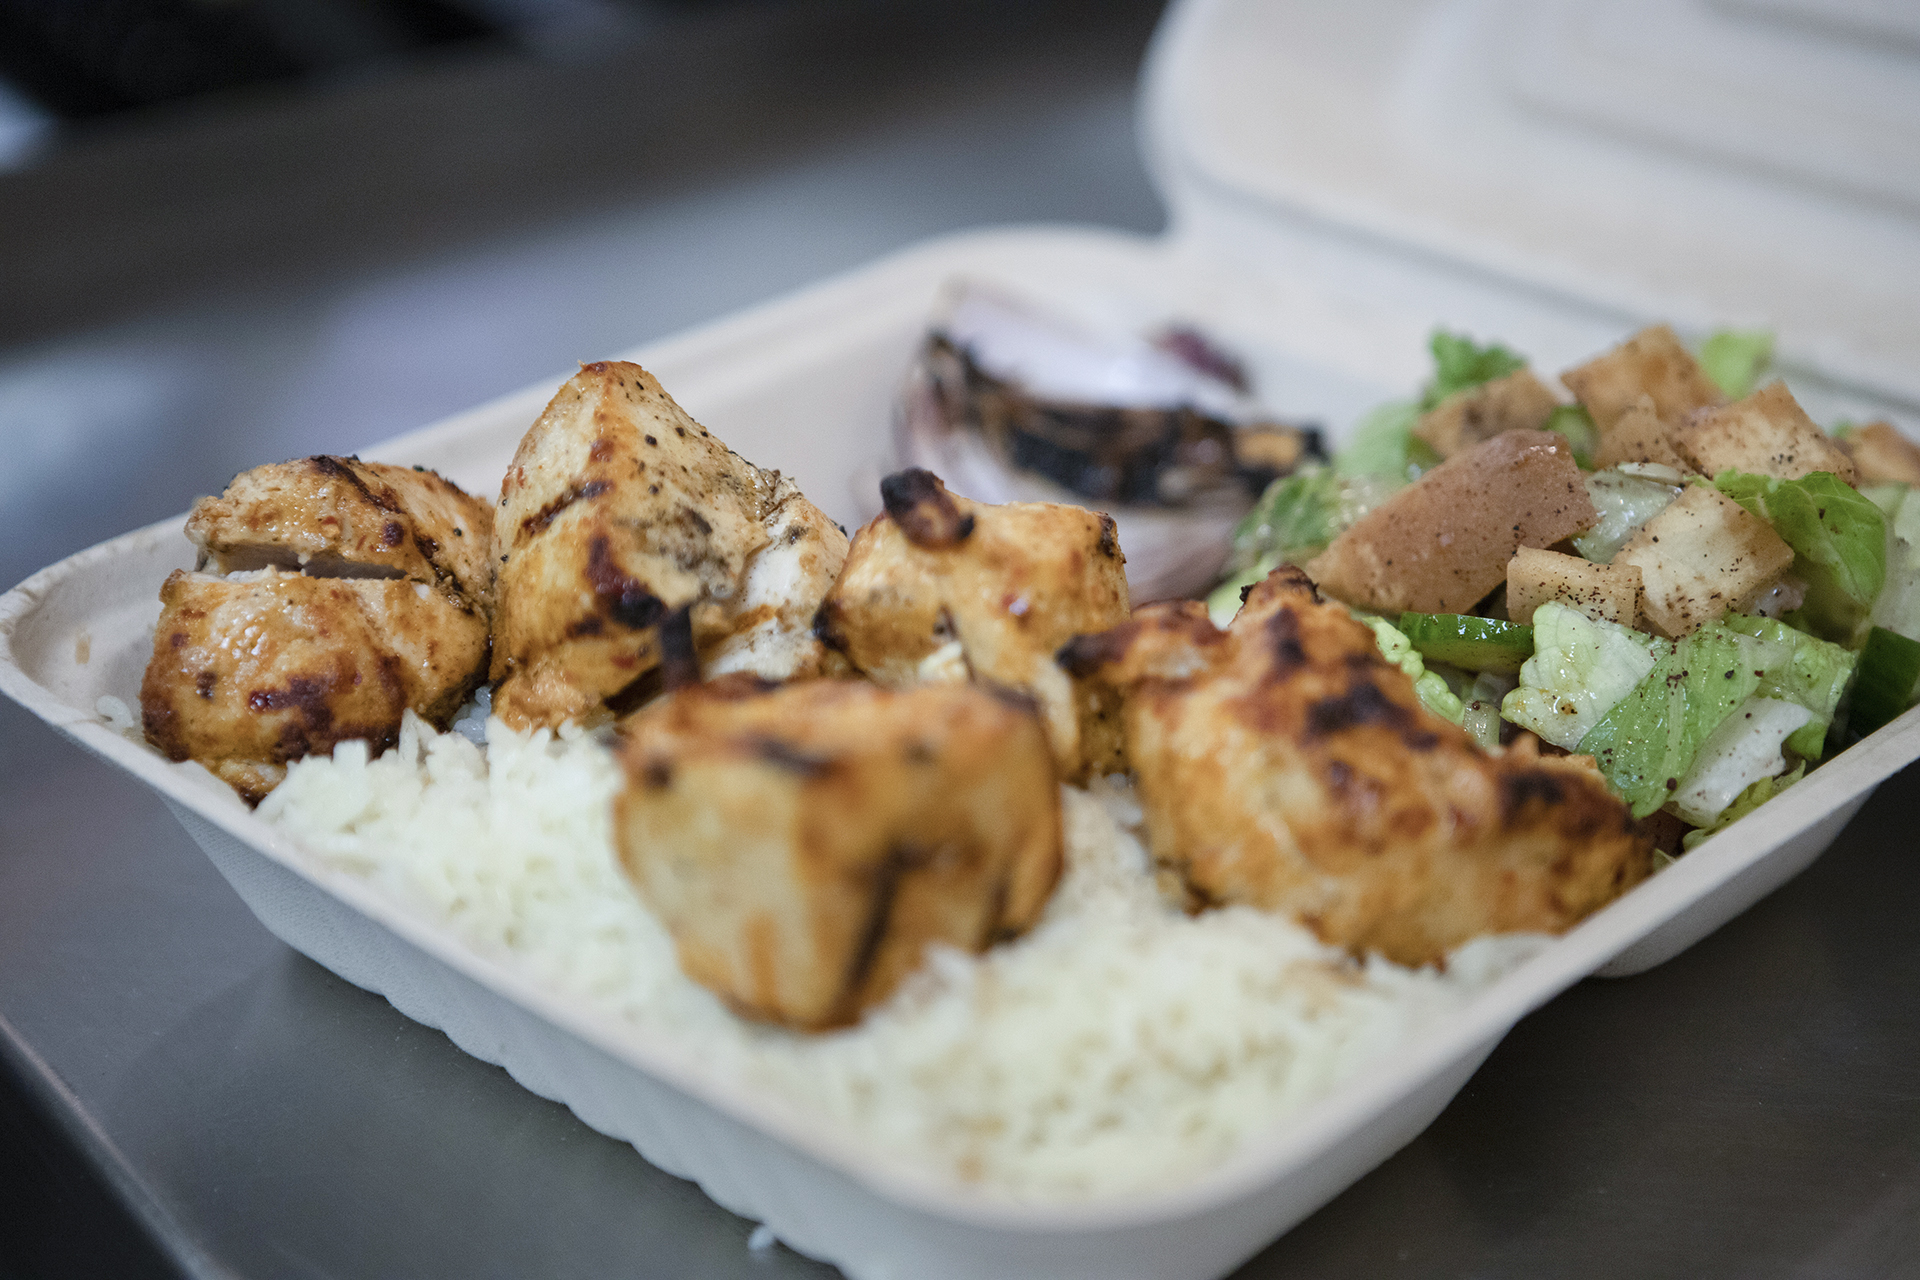 The Chicken Kabab platter is pictured on a smooth metallic table top. The kabab is served over a bed or rice and accompanied by sides of fresh grilled vegetables and a fattoush salad.